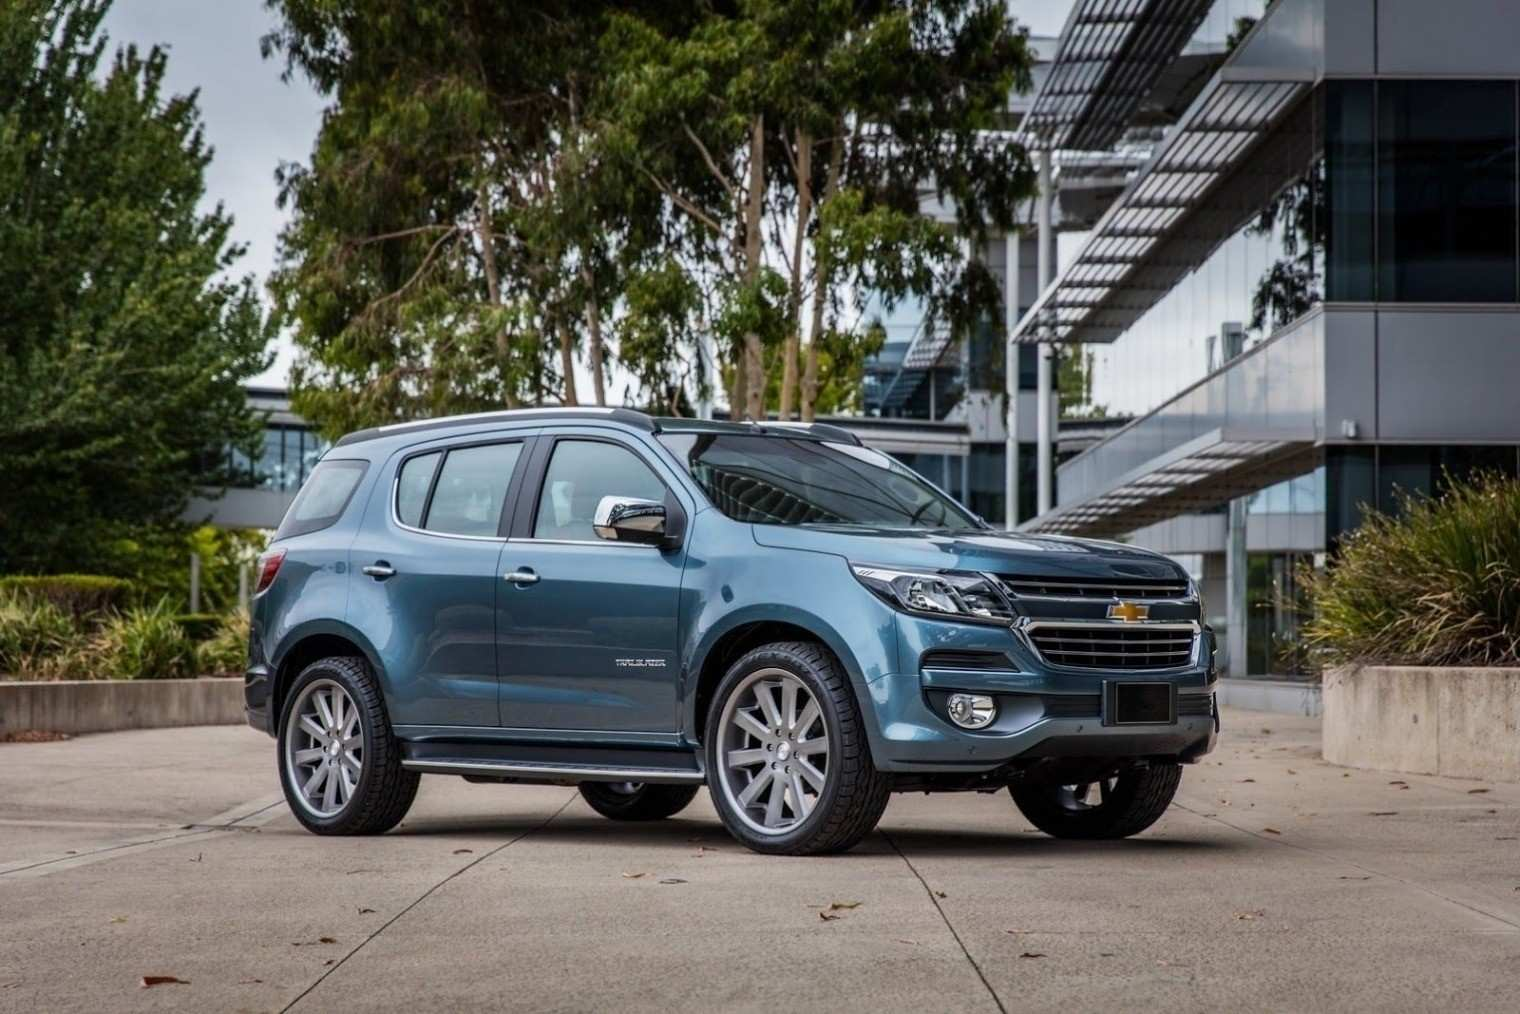 96 The 2019 Chevrolet Trailblazer Ss Pictures